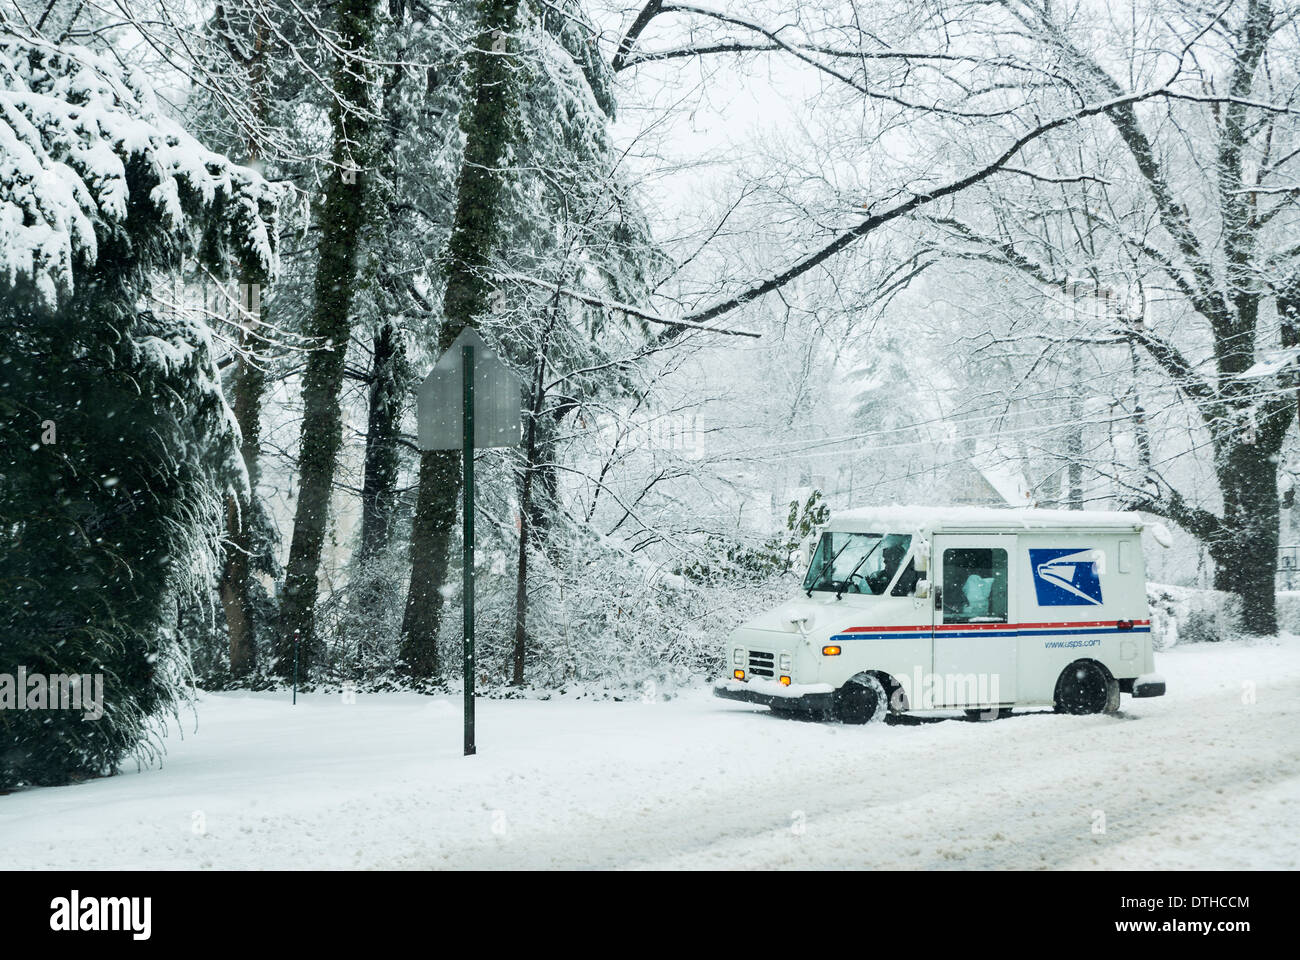 Mail delivery truck during a winter snow storm. - Stock Image